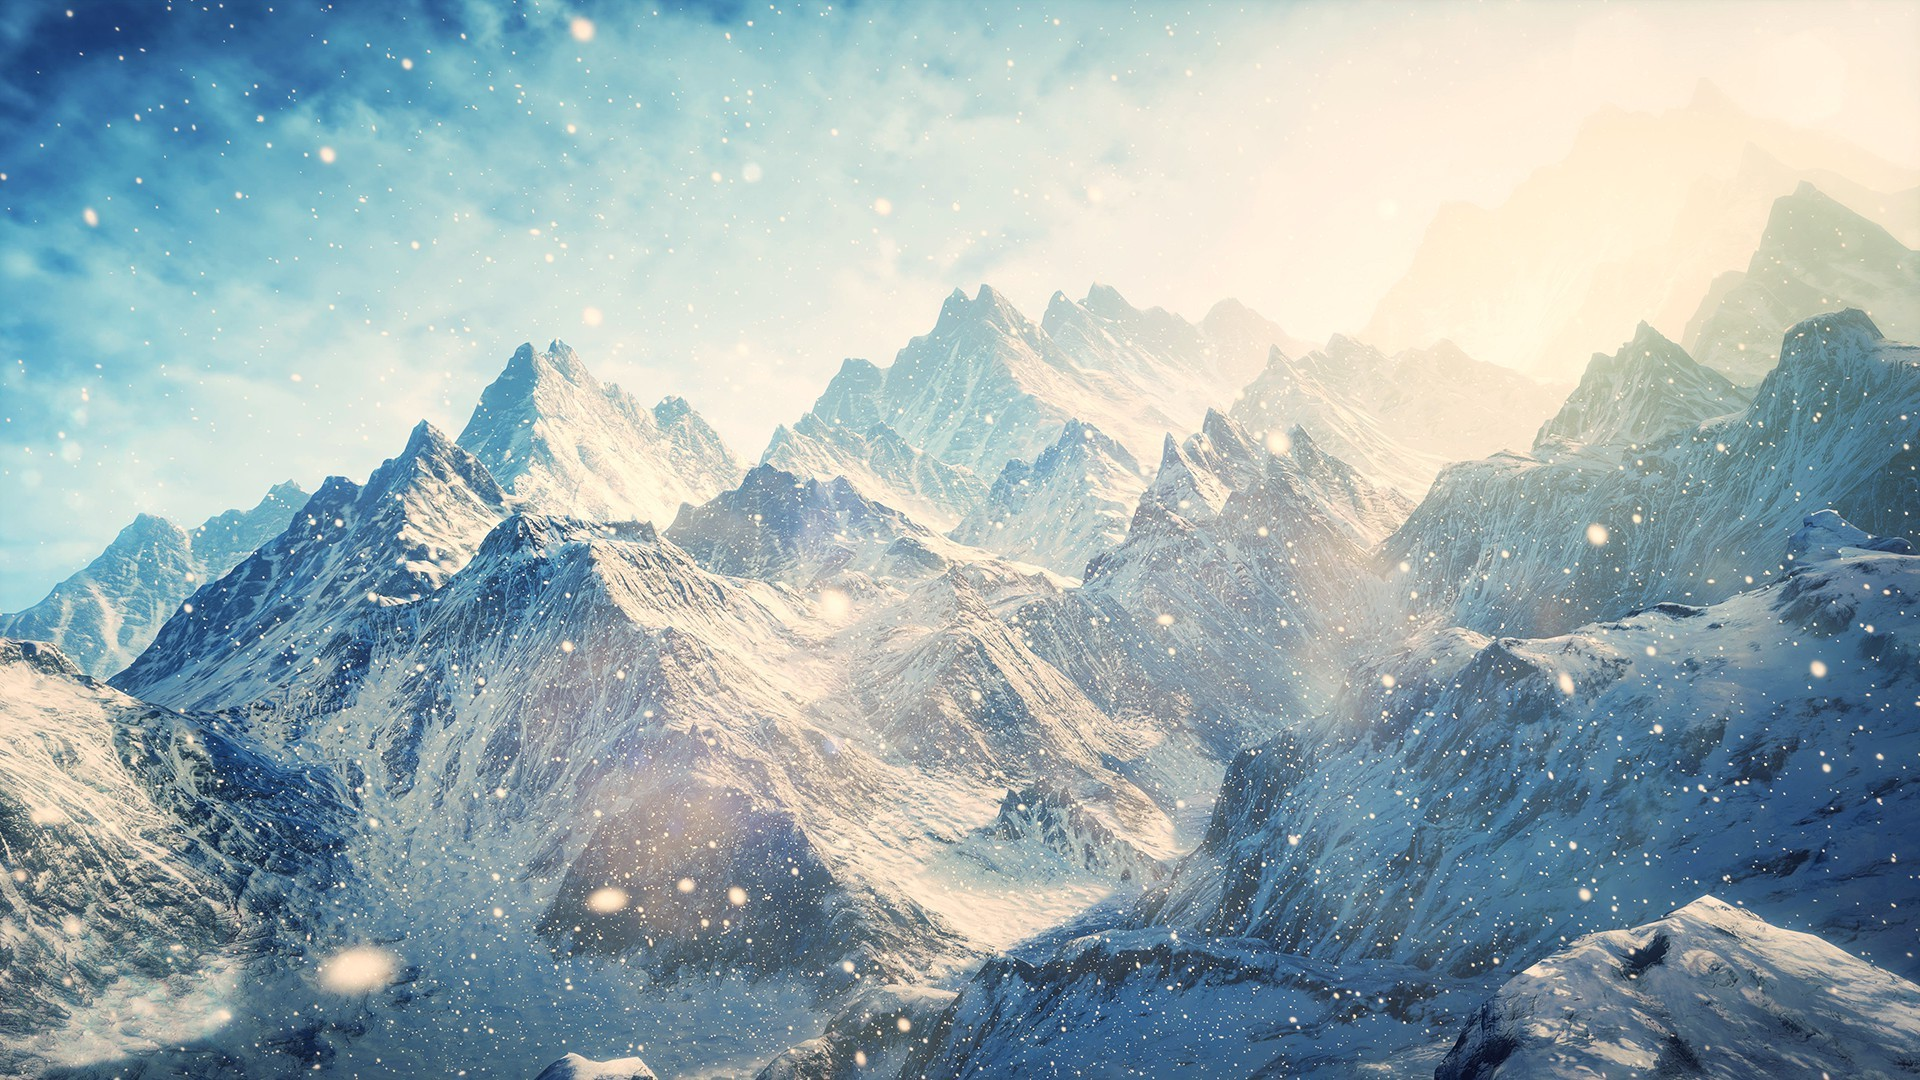 Mountain Peak Wallpaper